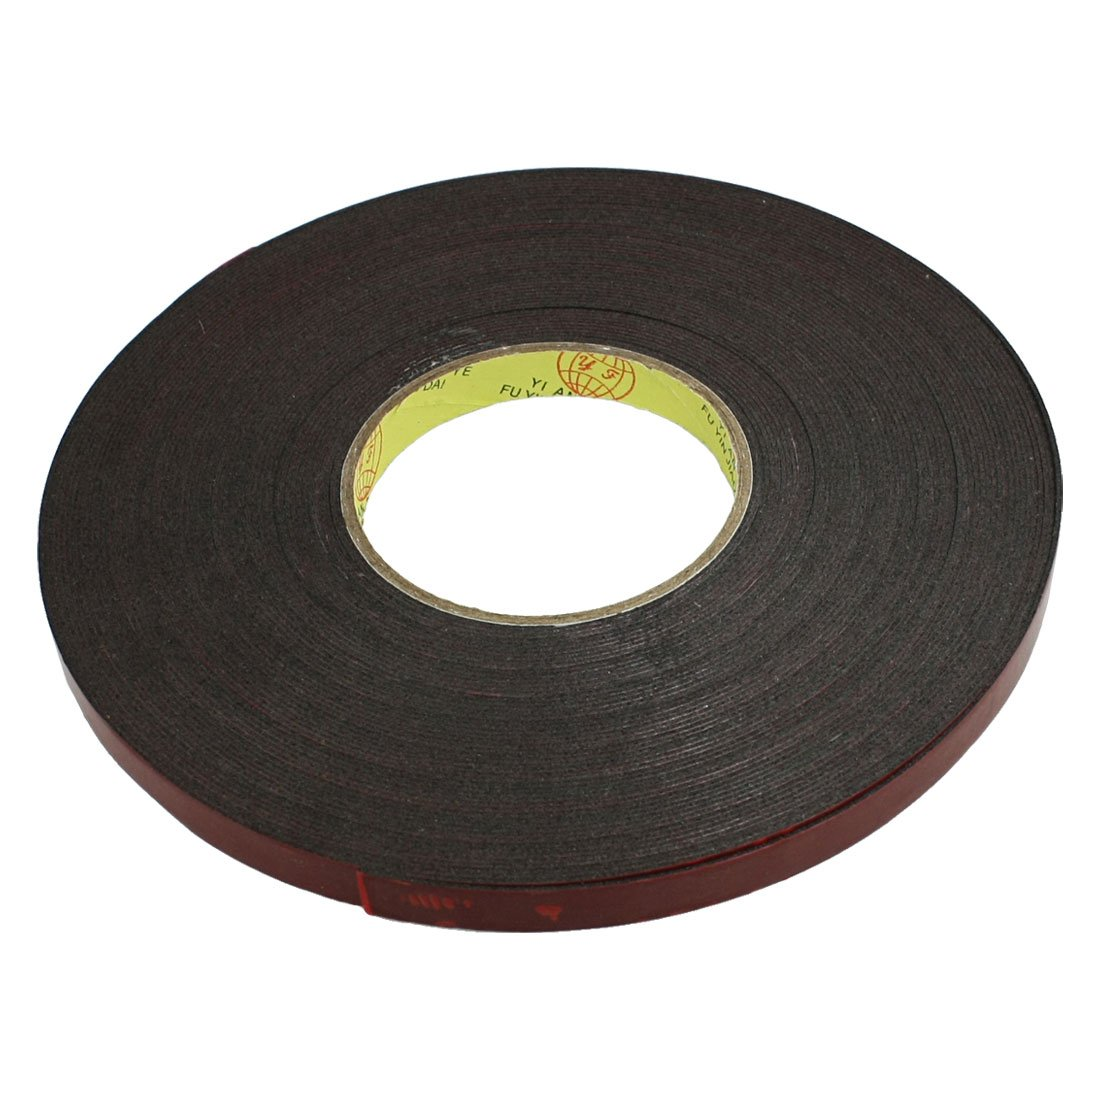 auto car acrylic foam double sided attachment tape adhesive 12mm wide k8n3 ebay. Black Bedroom Furniture Sets. Home Design Ideas